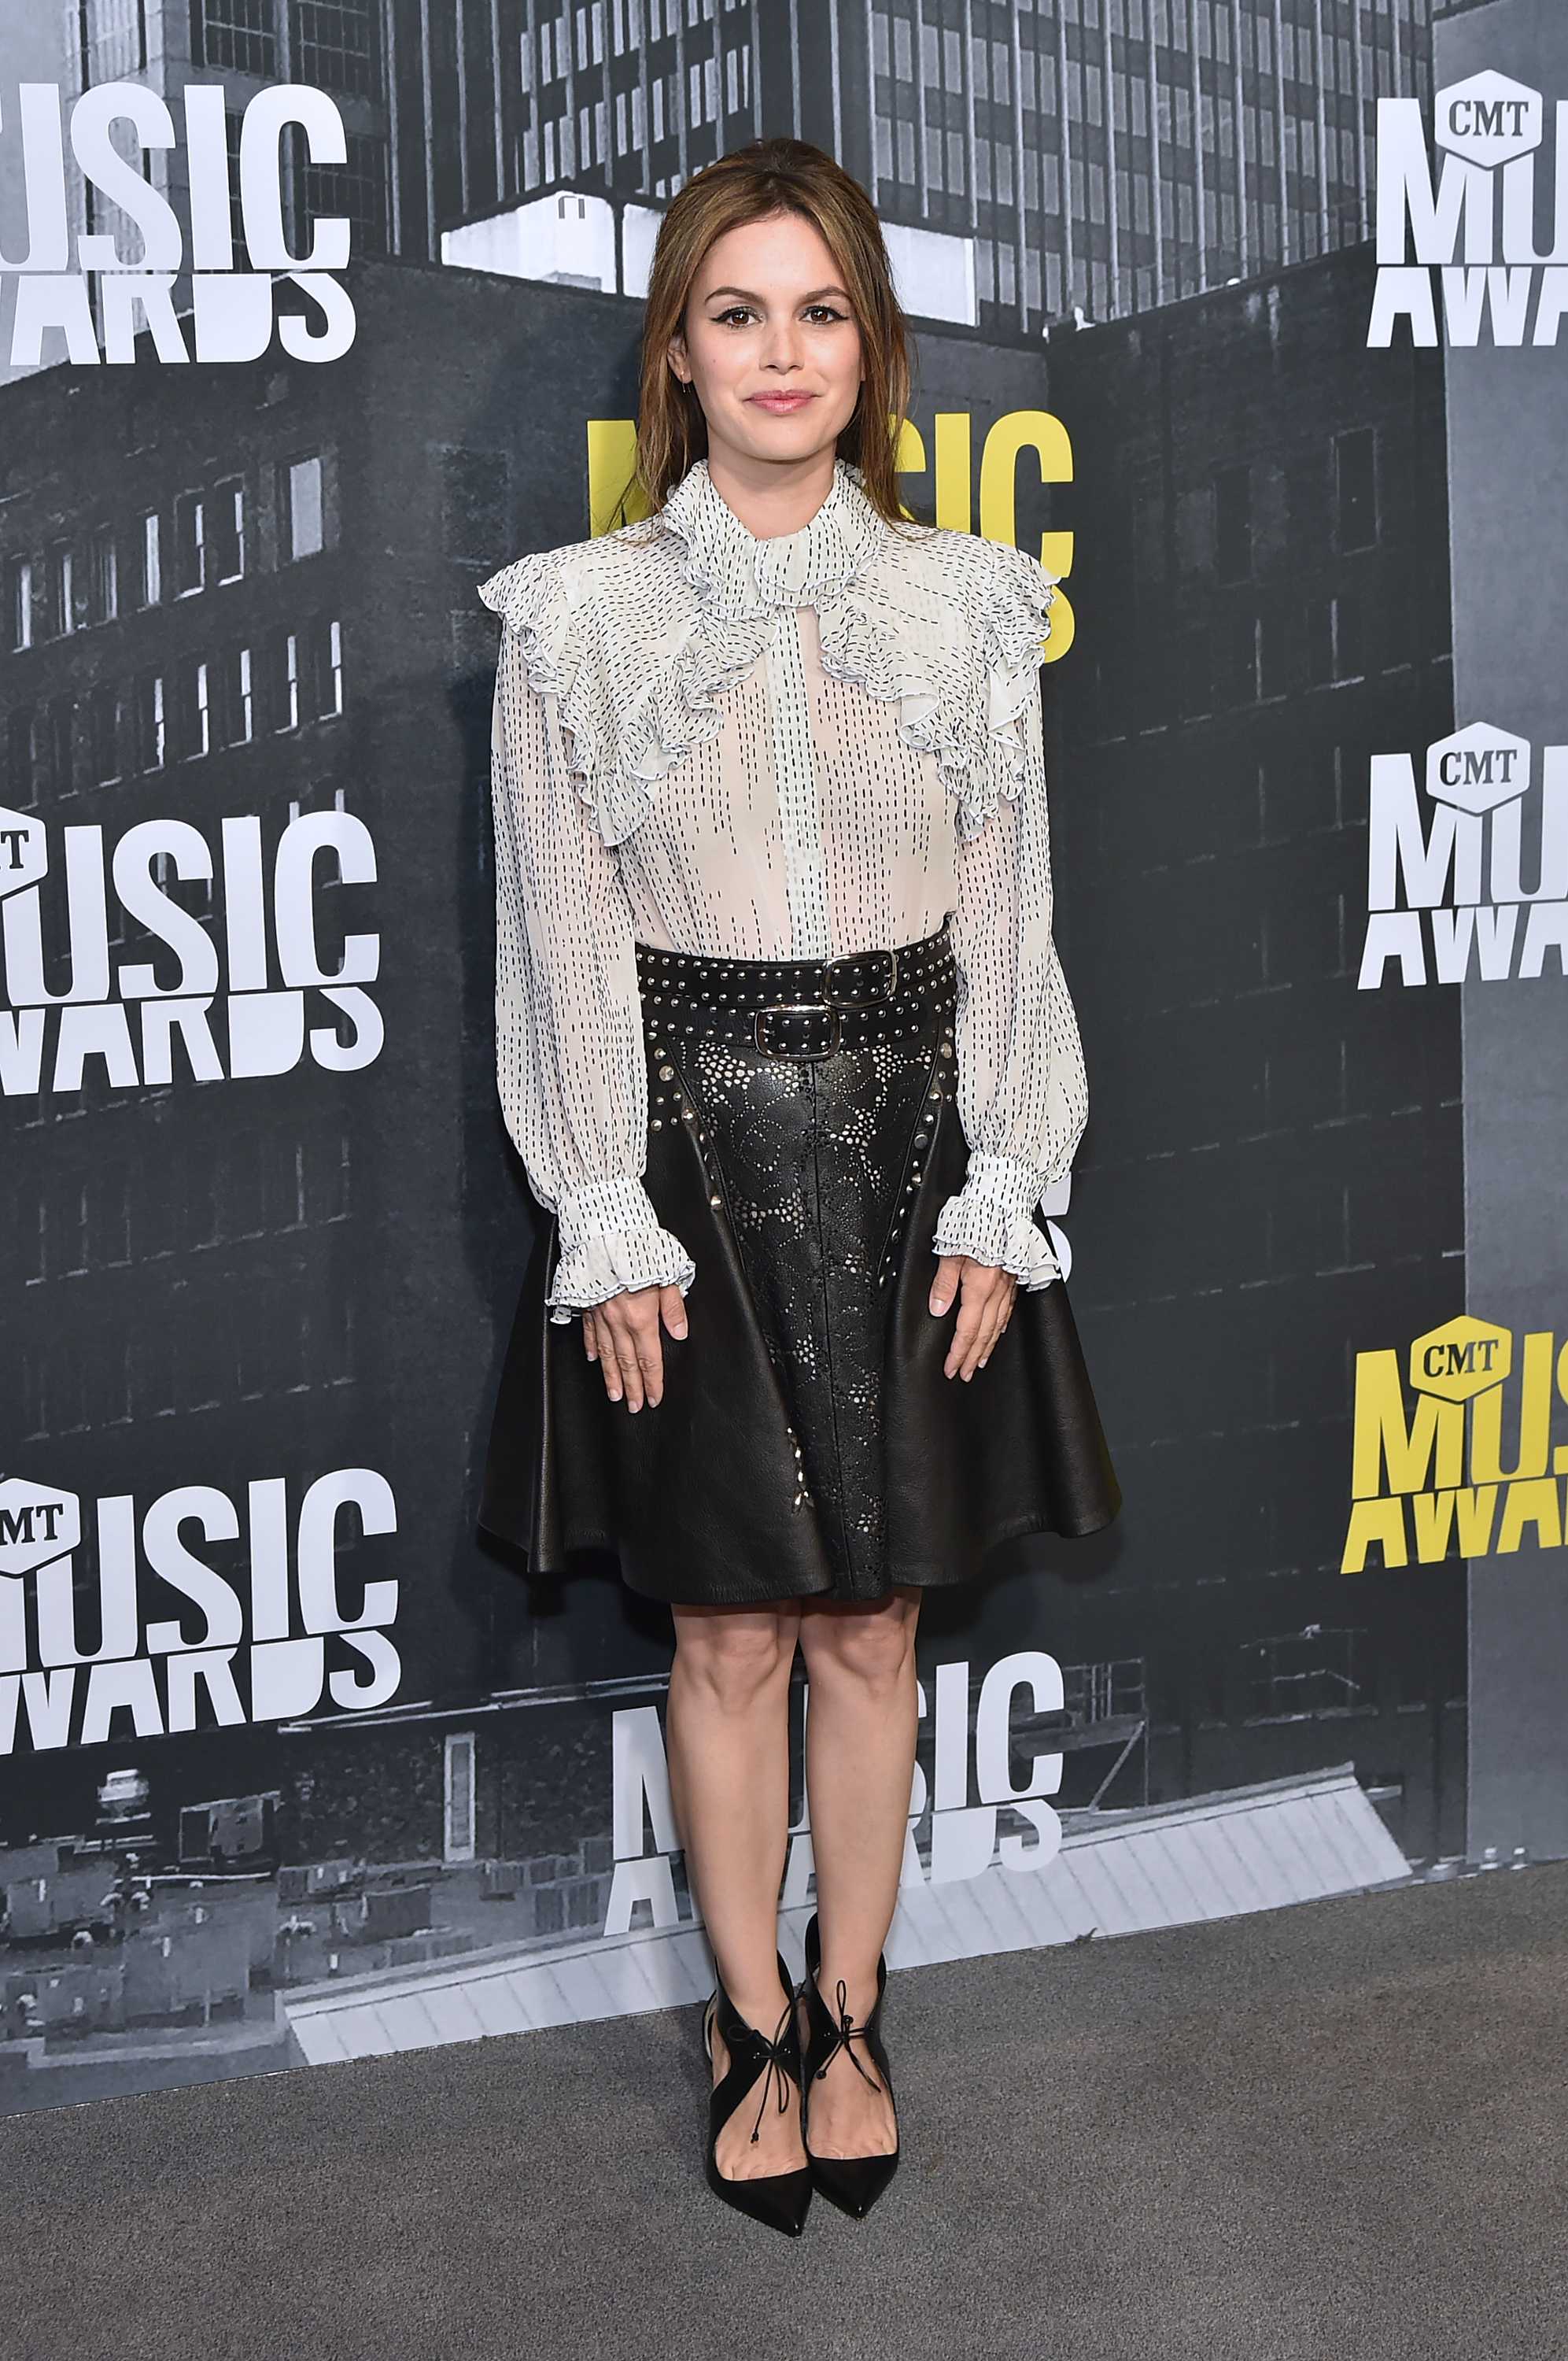 Rachel Bilson attends the 2017 CMT Music Awards at the Music City Center  in Nashville, Tennessee, on June 7, 2017.